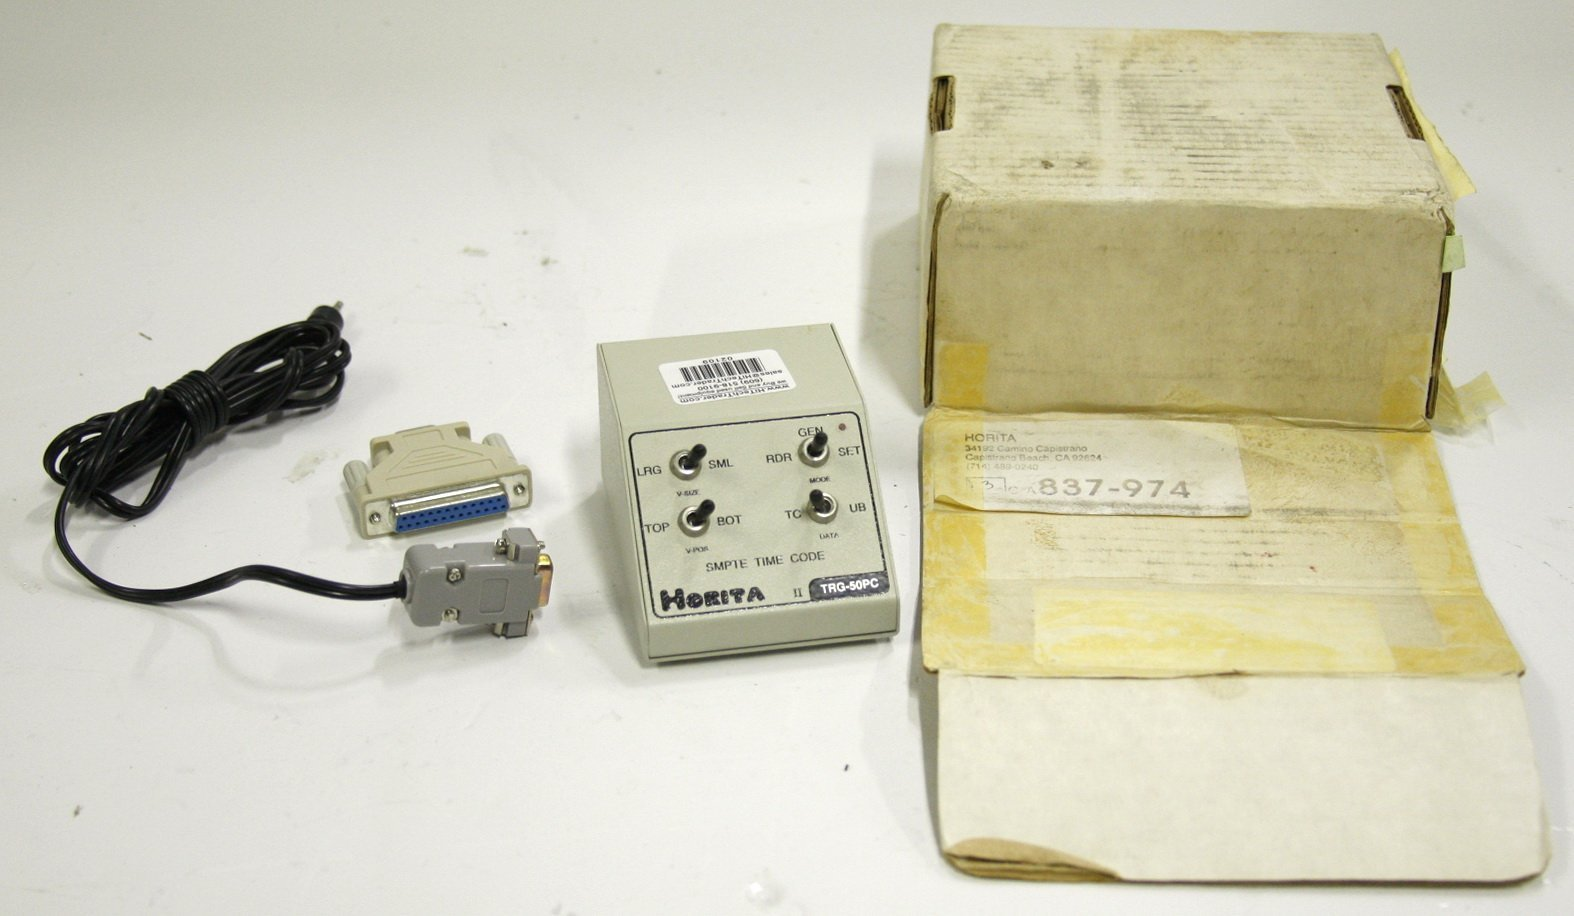 Horita TRG-50PC Longitudinal Time Code Generator